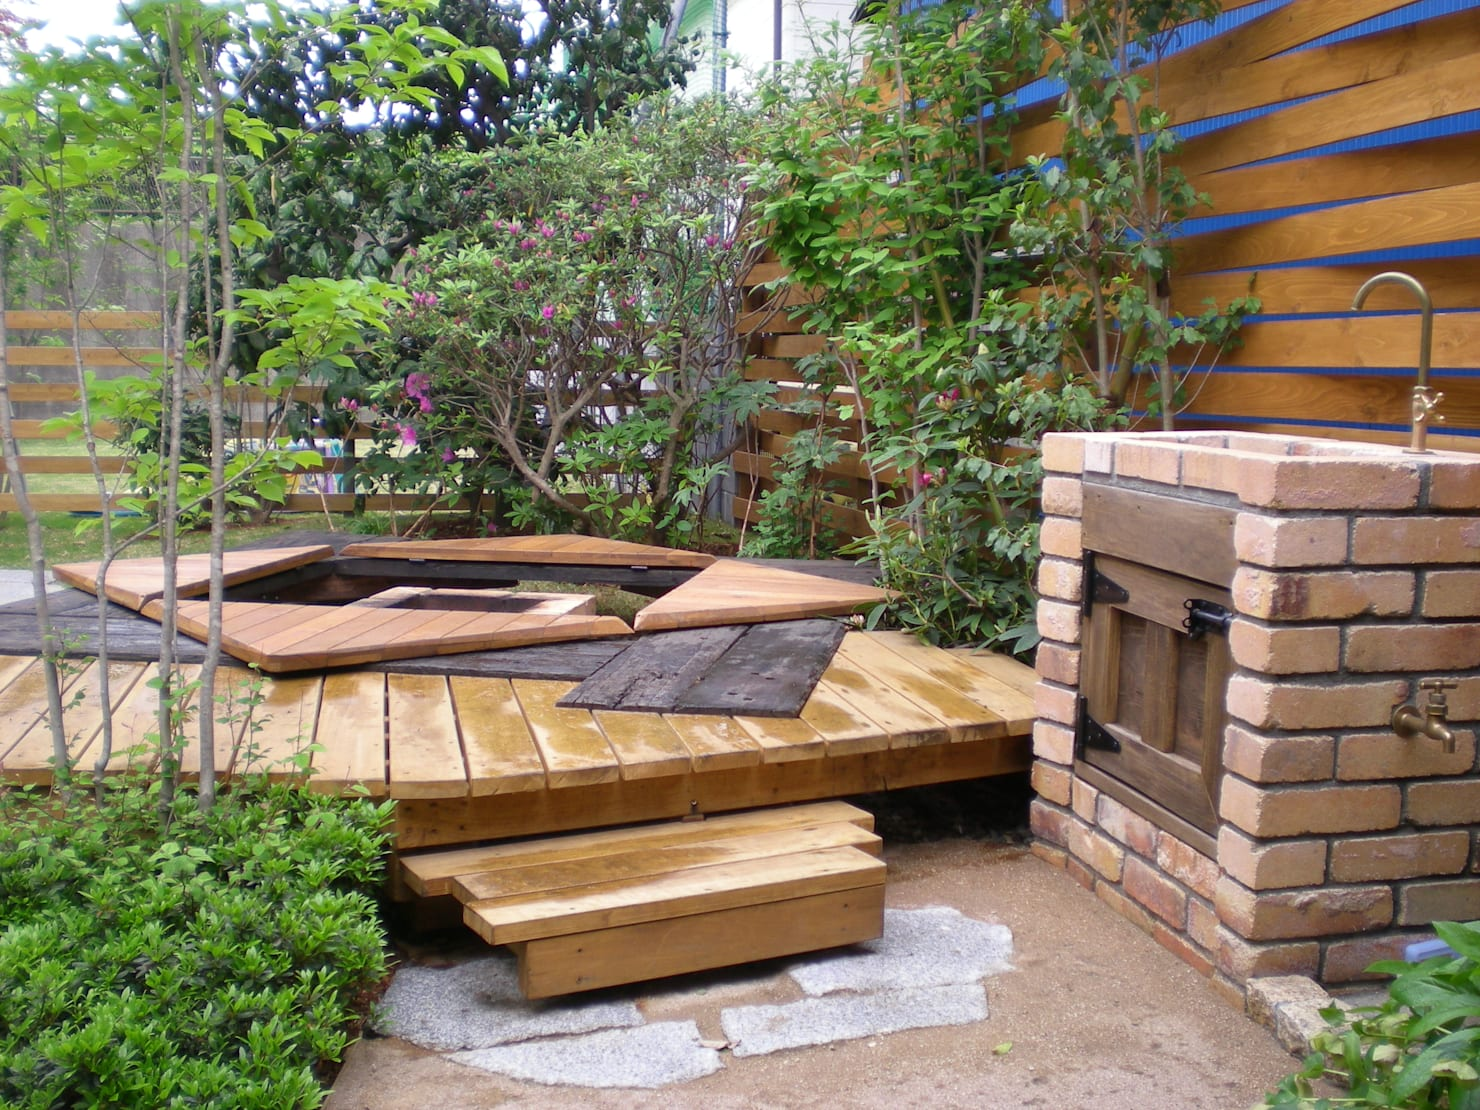 24 wooden garden projects you could try building